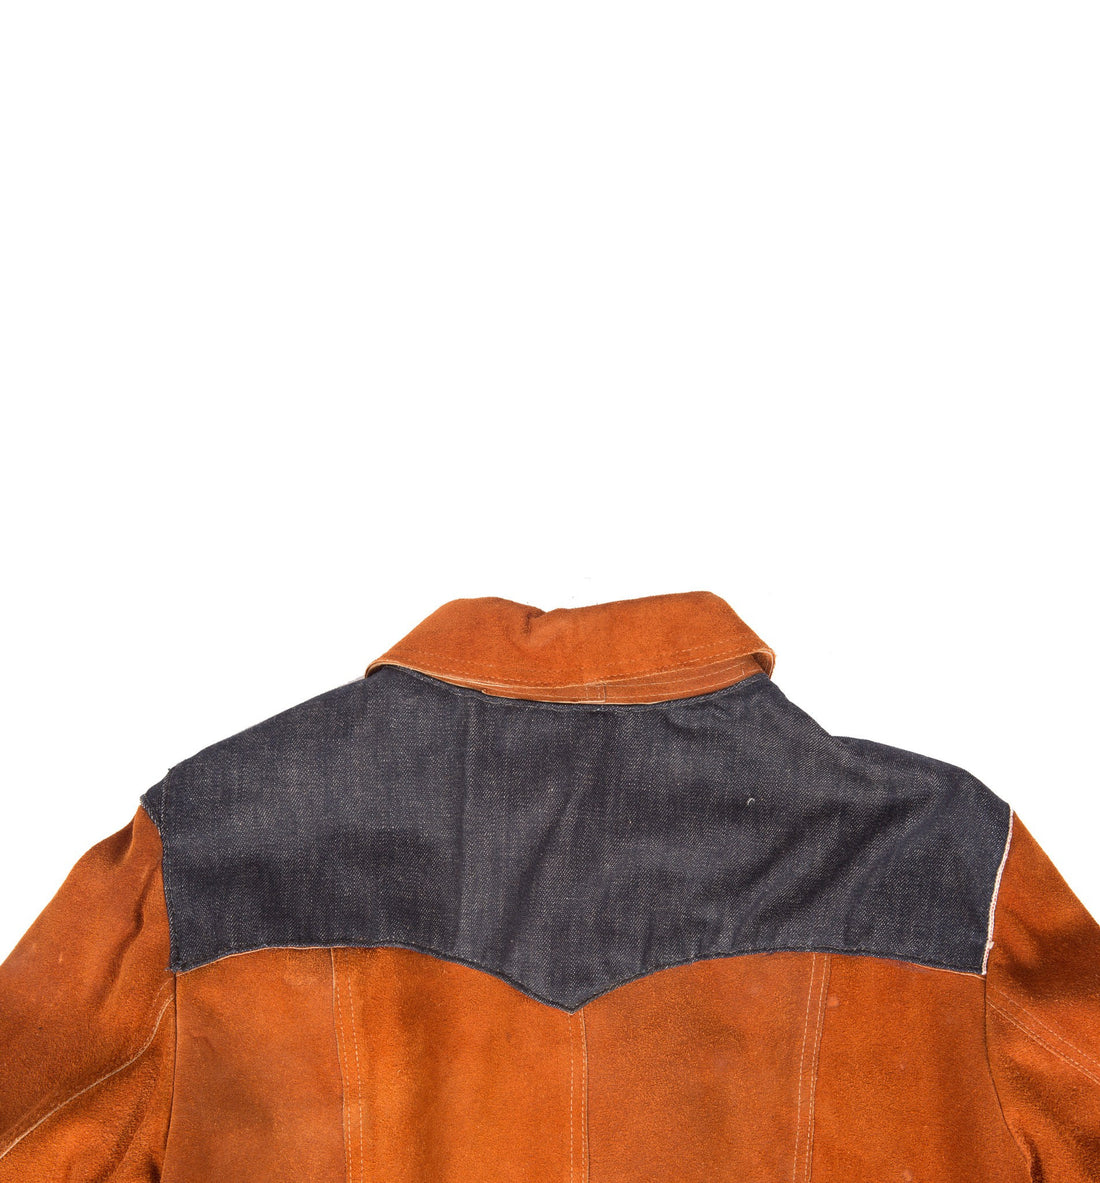 Vintage Zig Zag Refurbished Suede Jacket